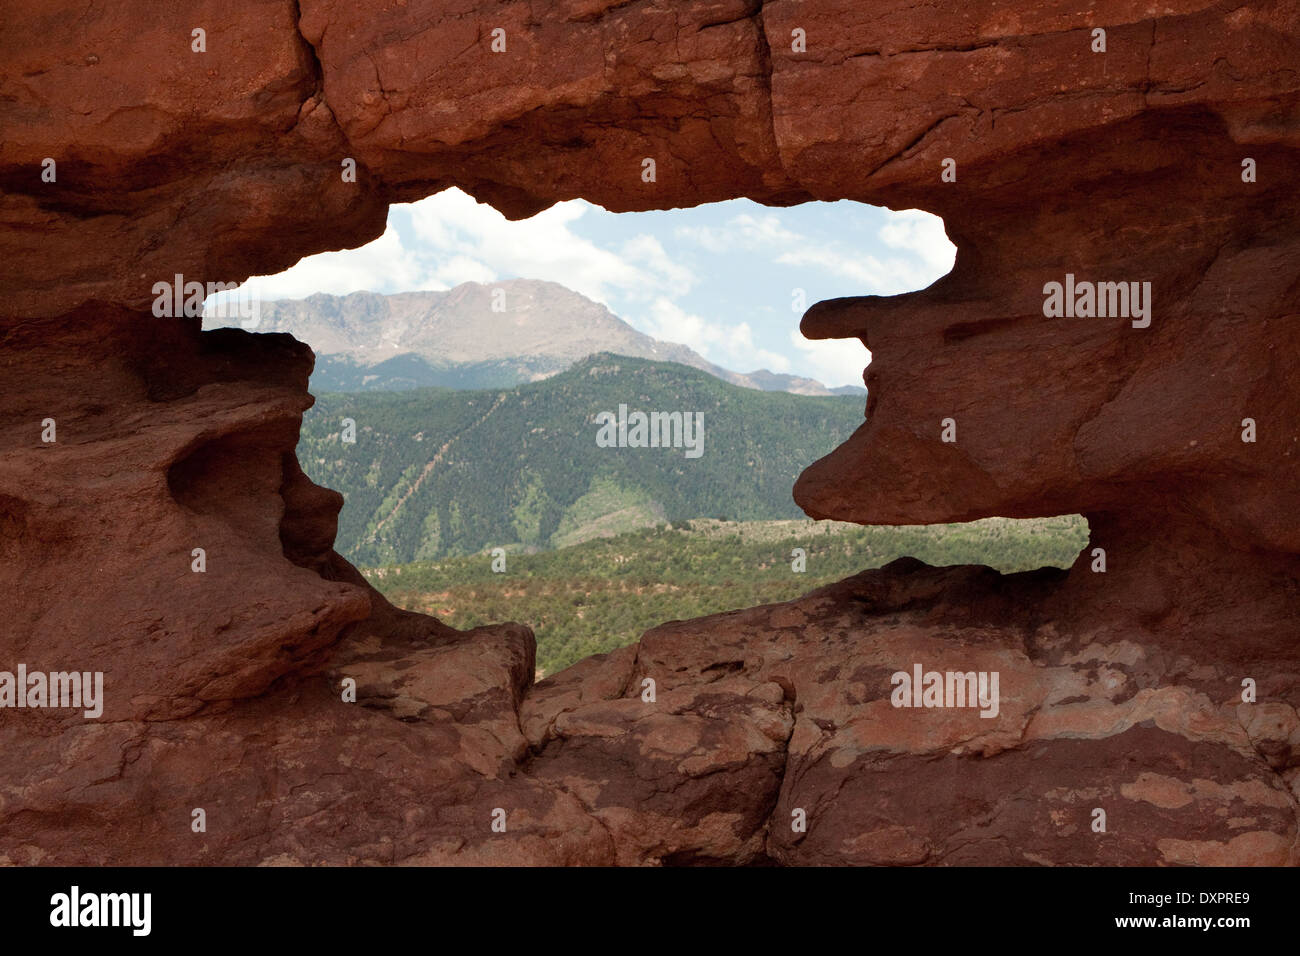 Pikes Peak as seen through the 'window' near the base of the Siamese Twins formation, Garden of the Gods park, Colorado USA - Stock Image